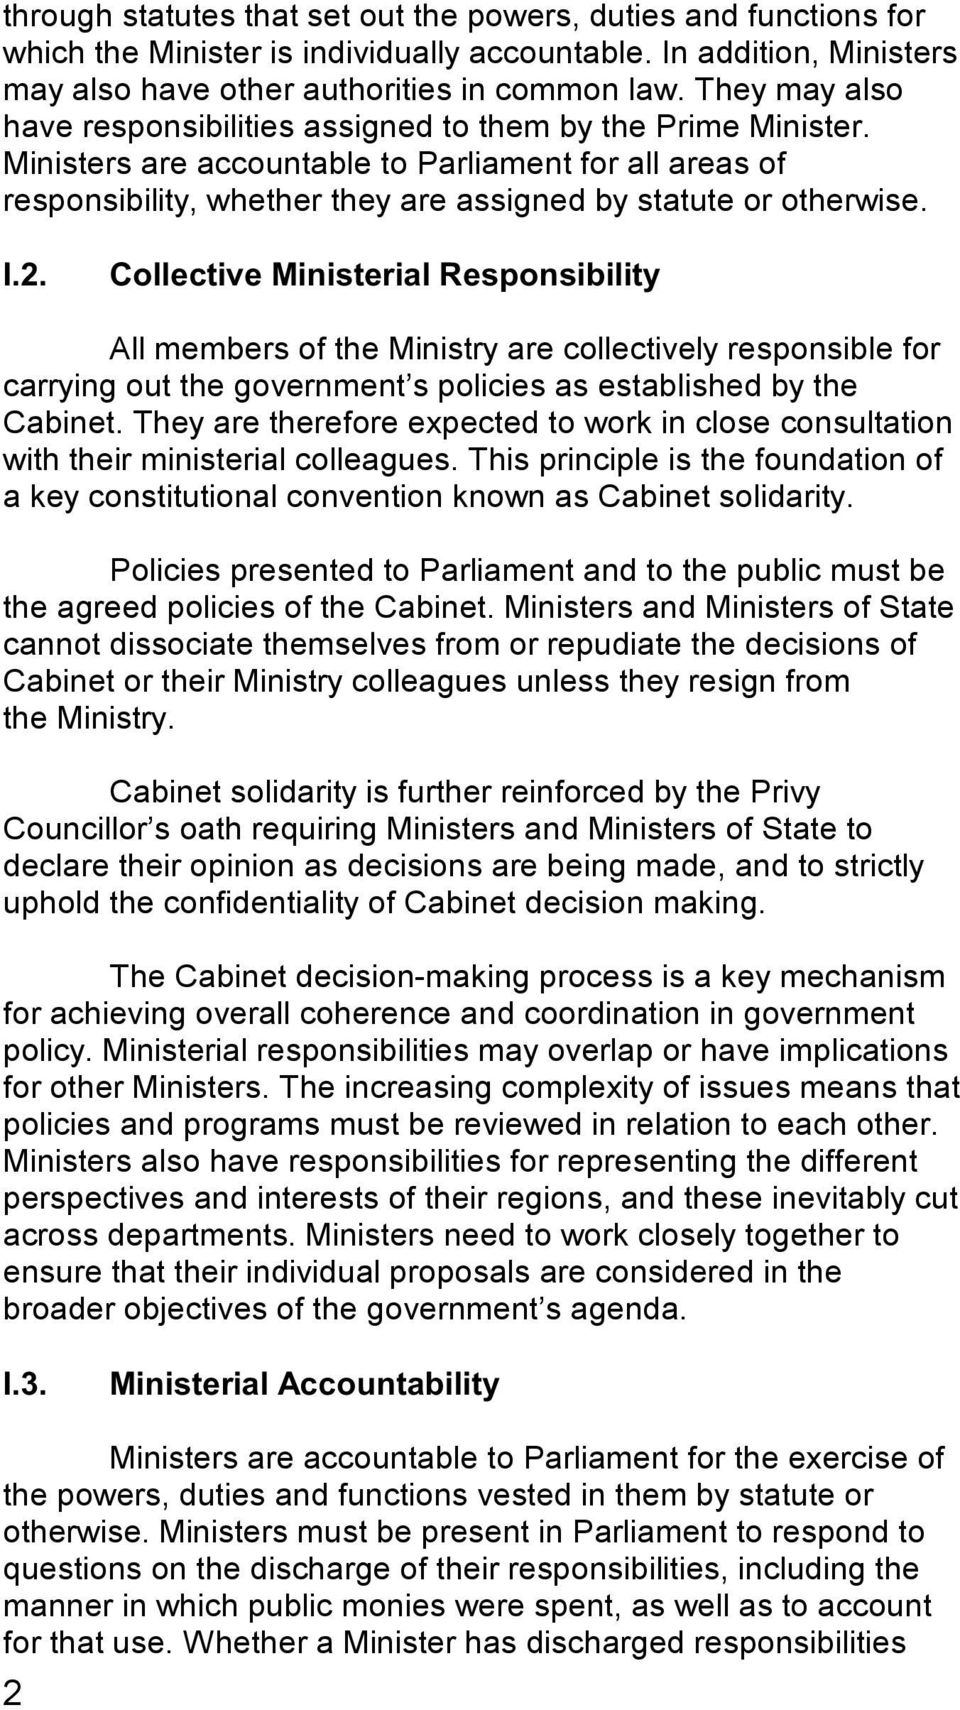 I.2. Collective Ministerial Responsibility All members of the Ministry are collectively responsible for carrying out the government s policies as established by the Cabinet.